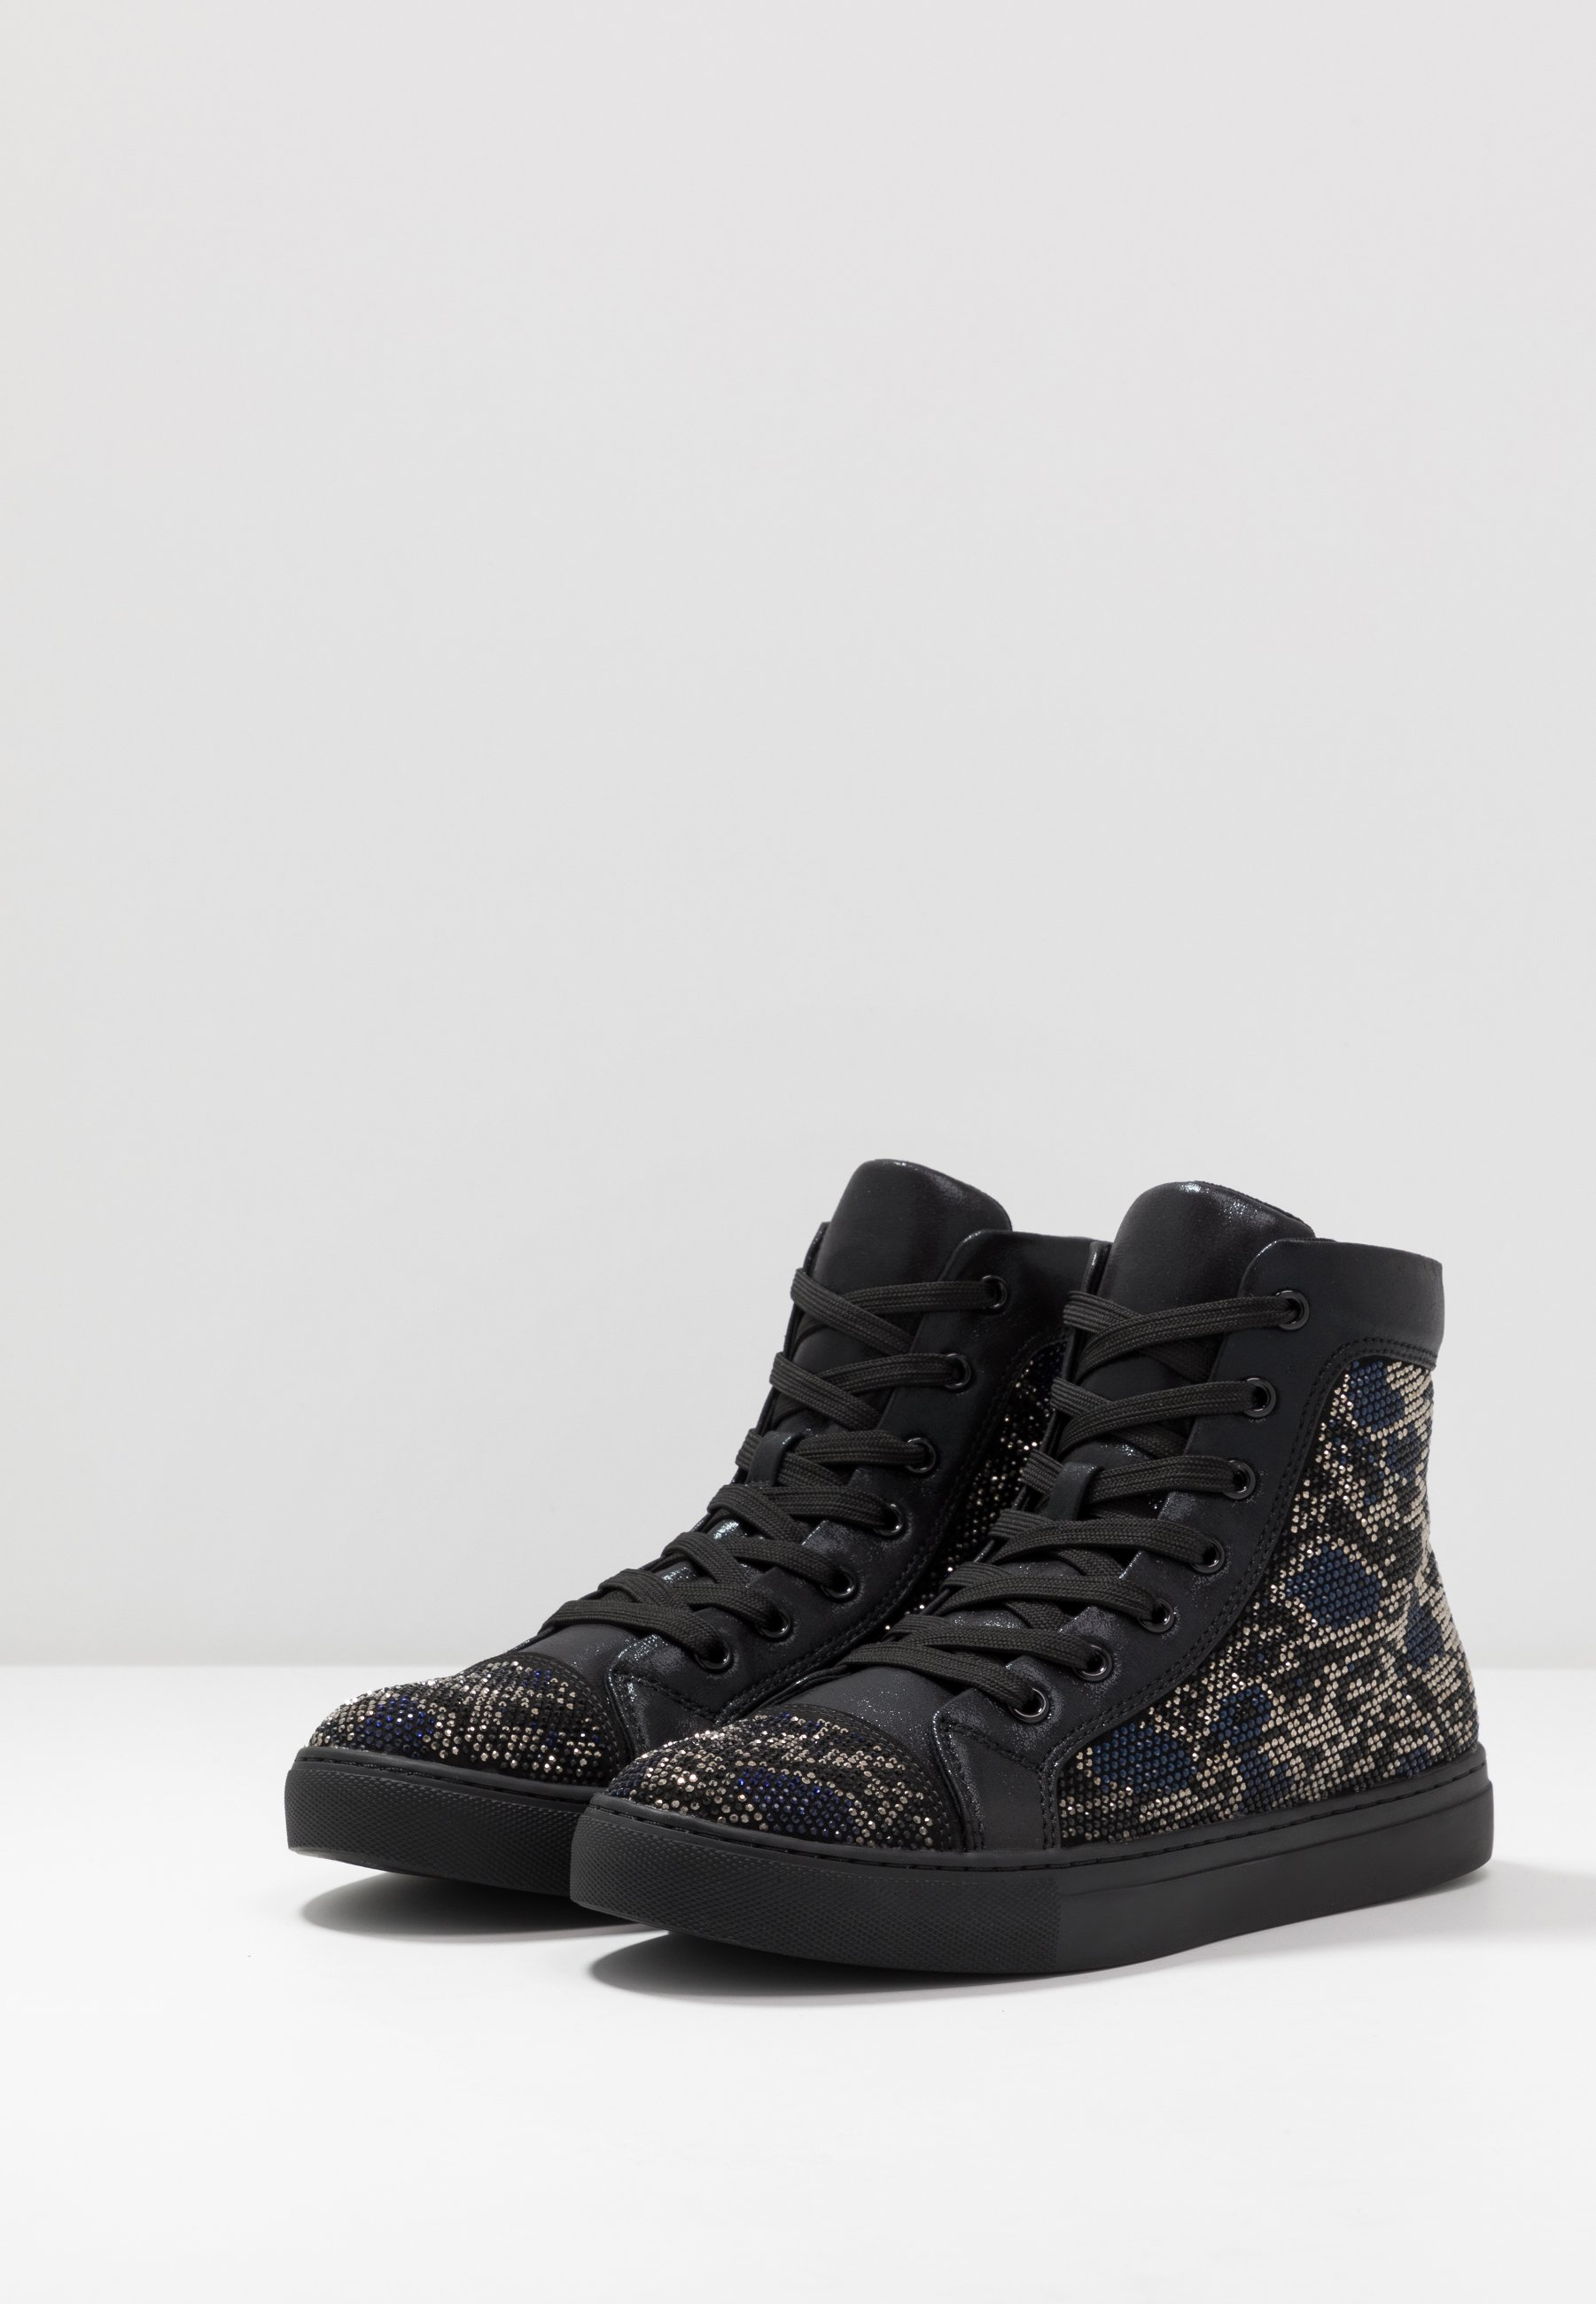 Steve Madden Riot - High-top Trainers Black/silver